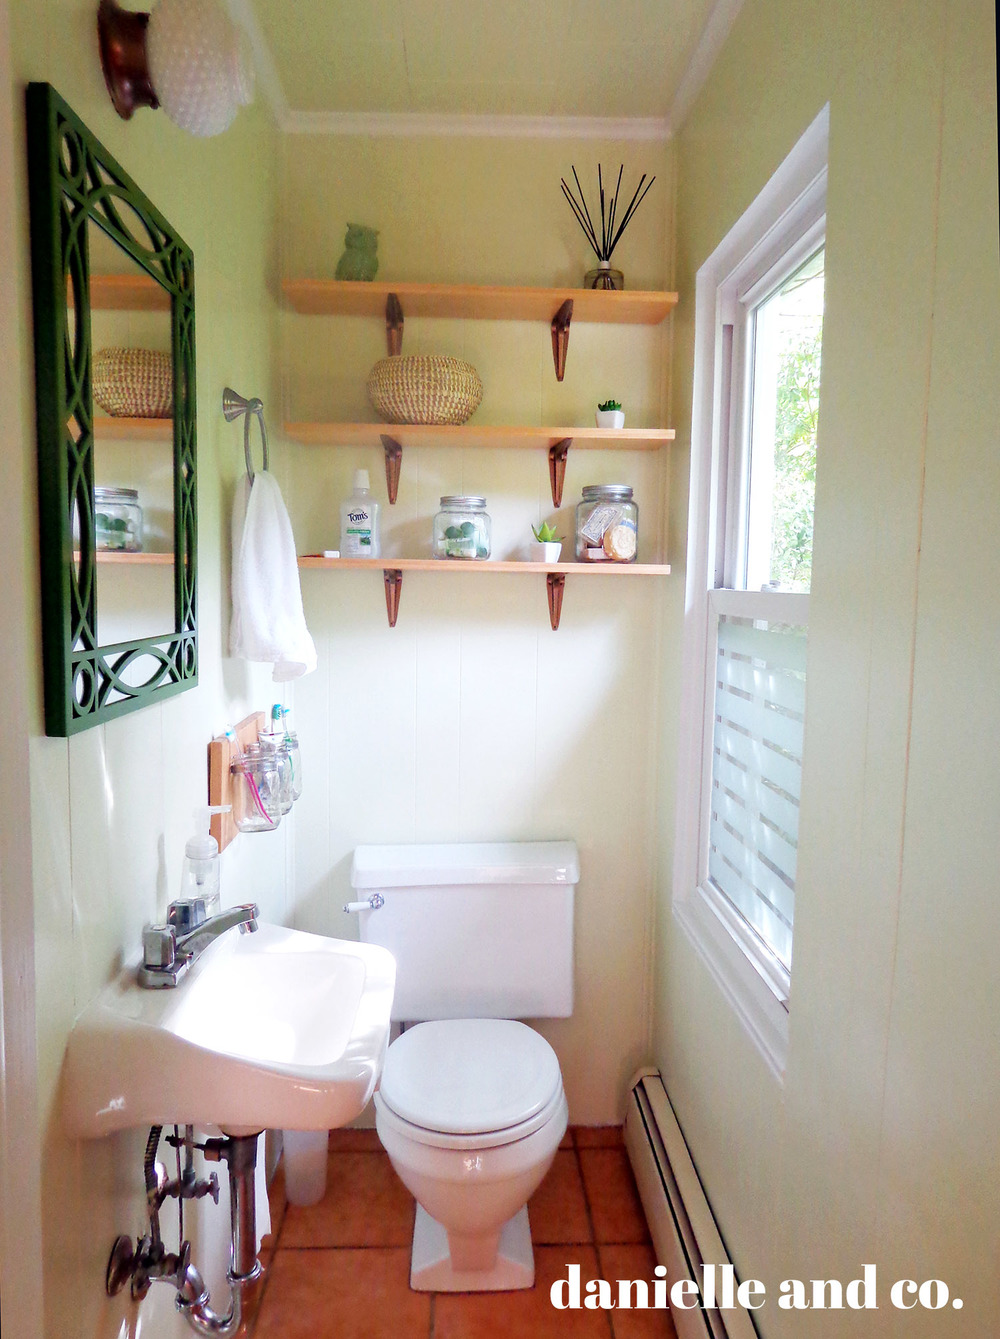 Small bathroom updated with Dark Linen by Benjamin Moore, and DIY shelving! All for just around $200.